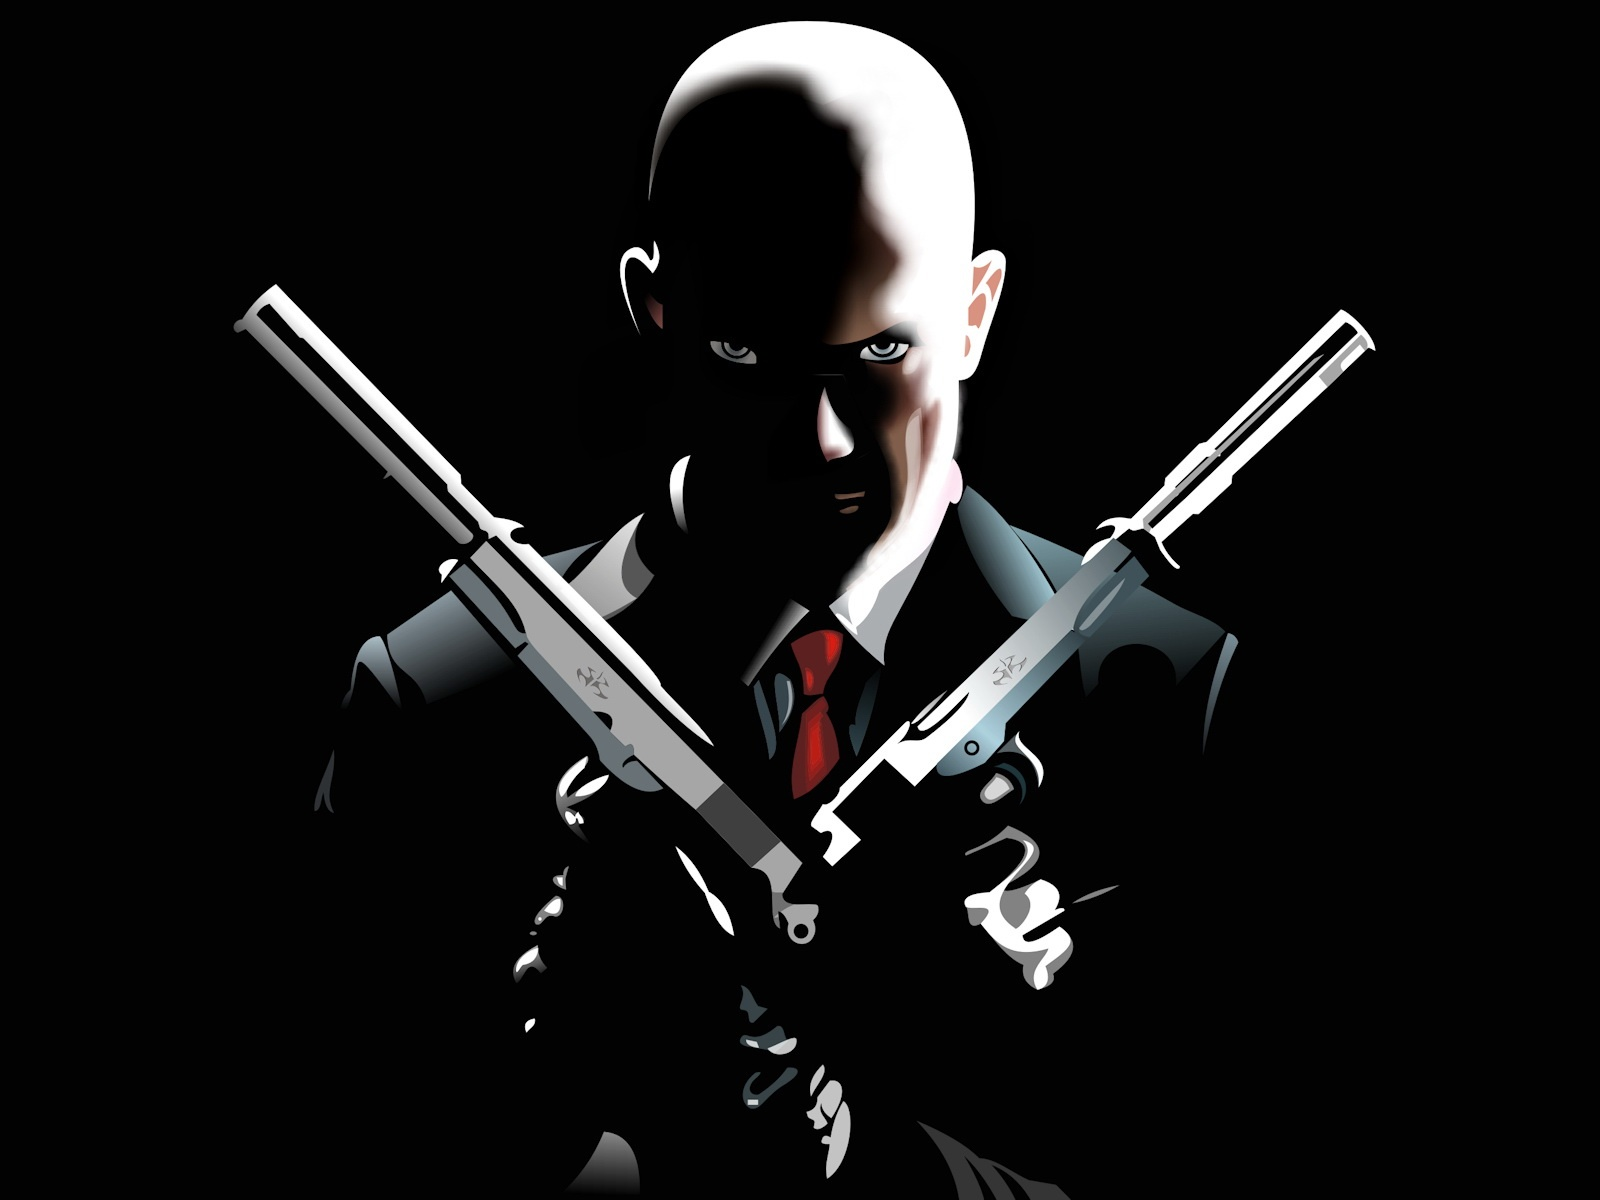 Hitman Wallpapers   1600x1200   149367 1600x1200